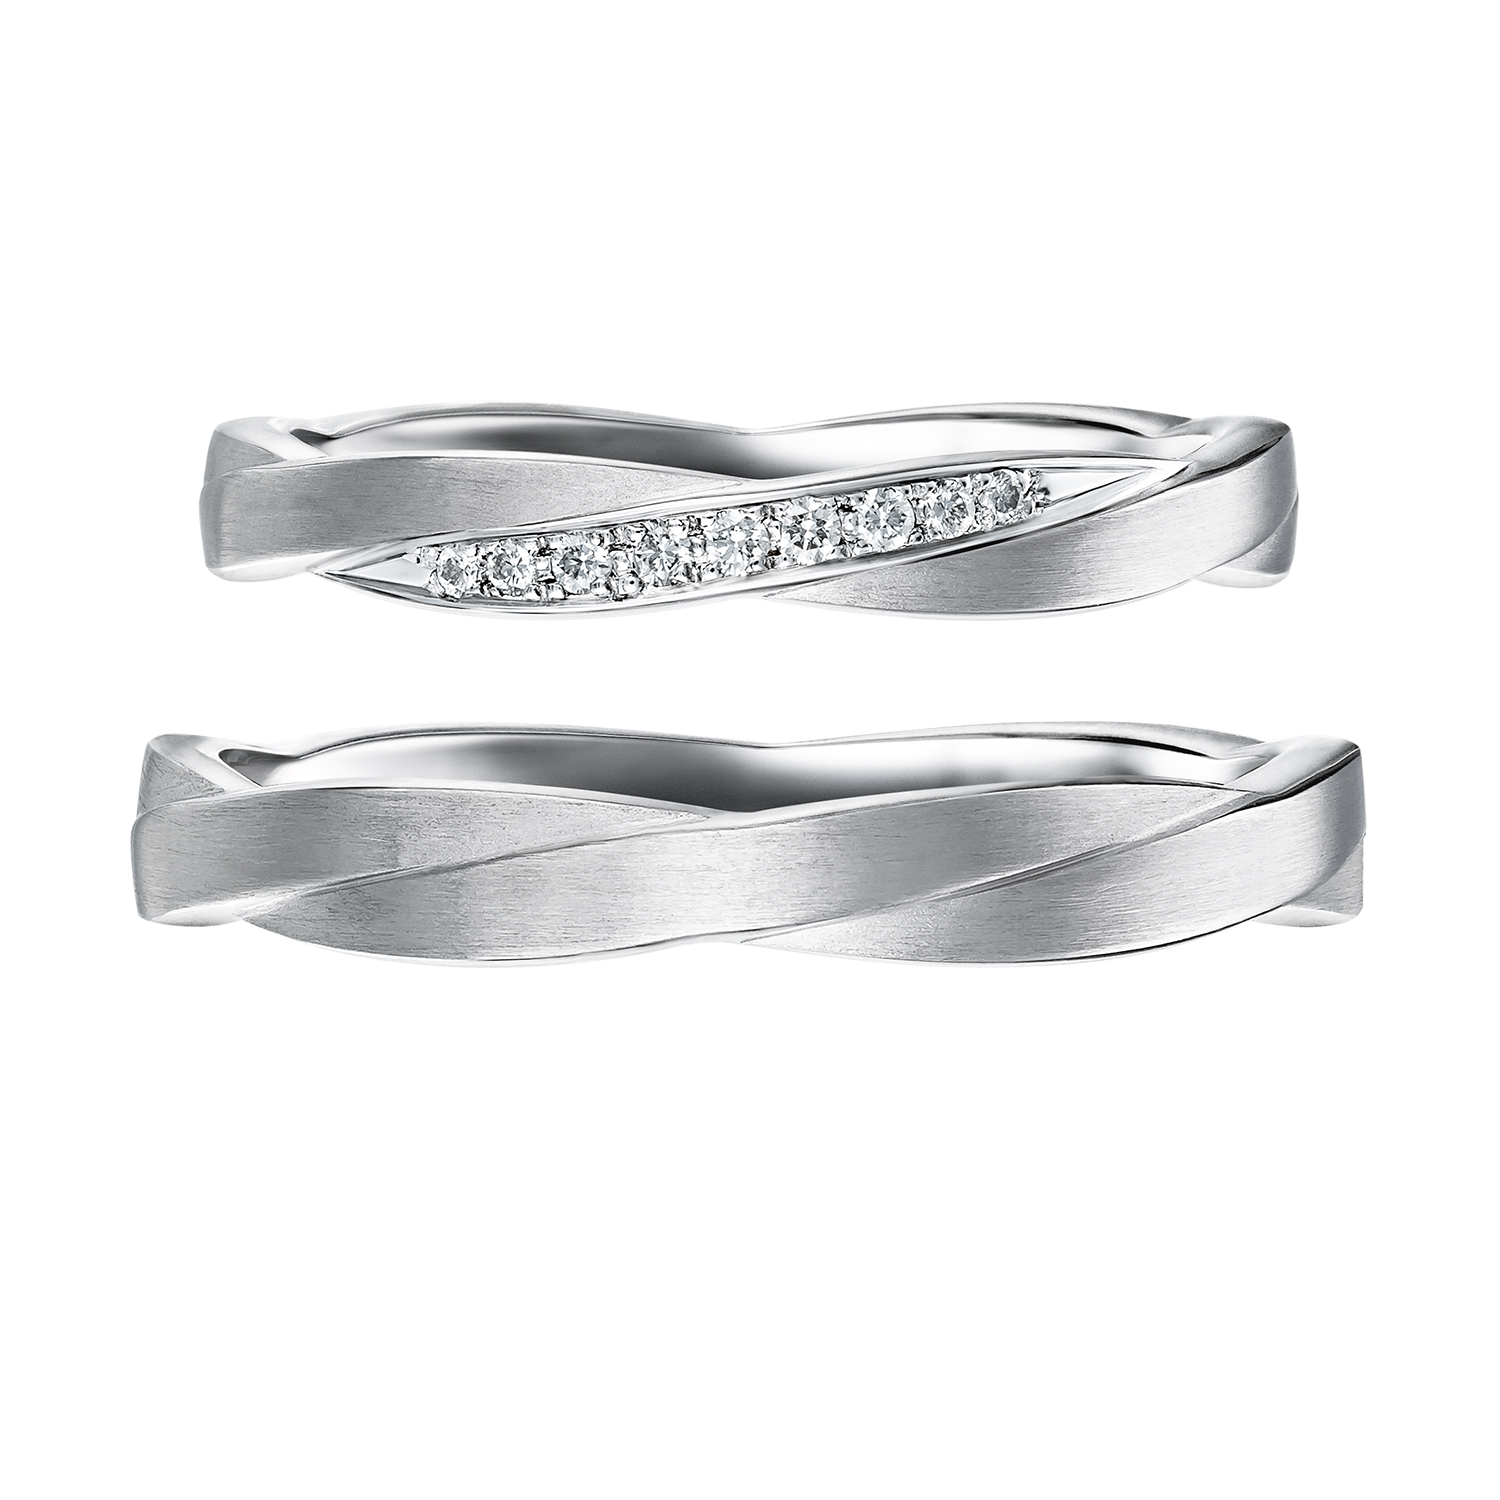 Wedding bands, Trauringe, Gold, Platin, Diamanten, Heiraten